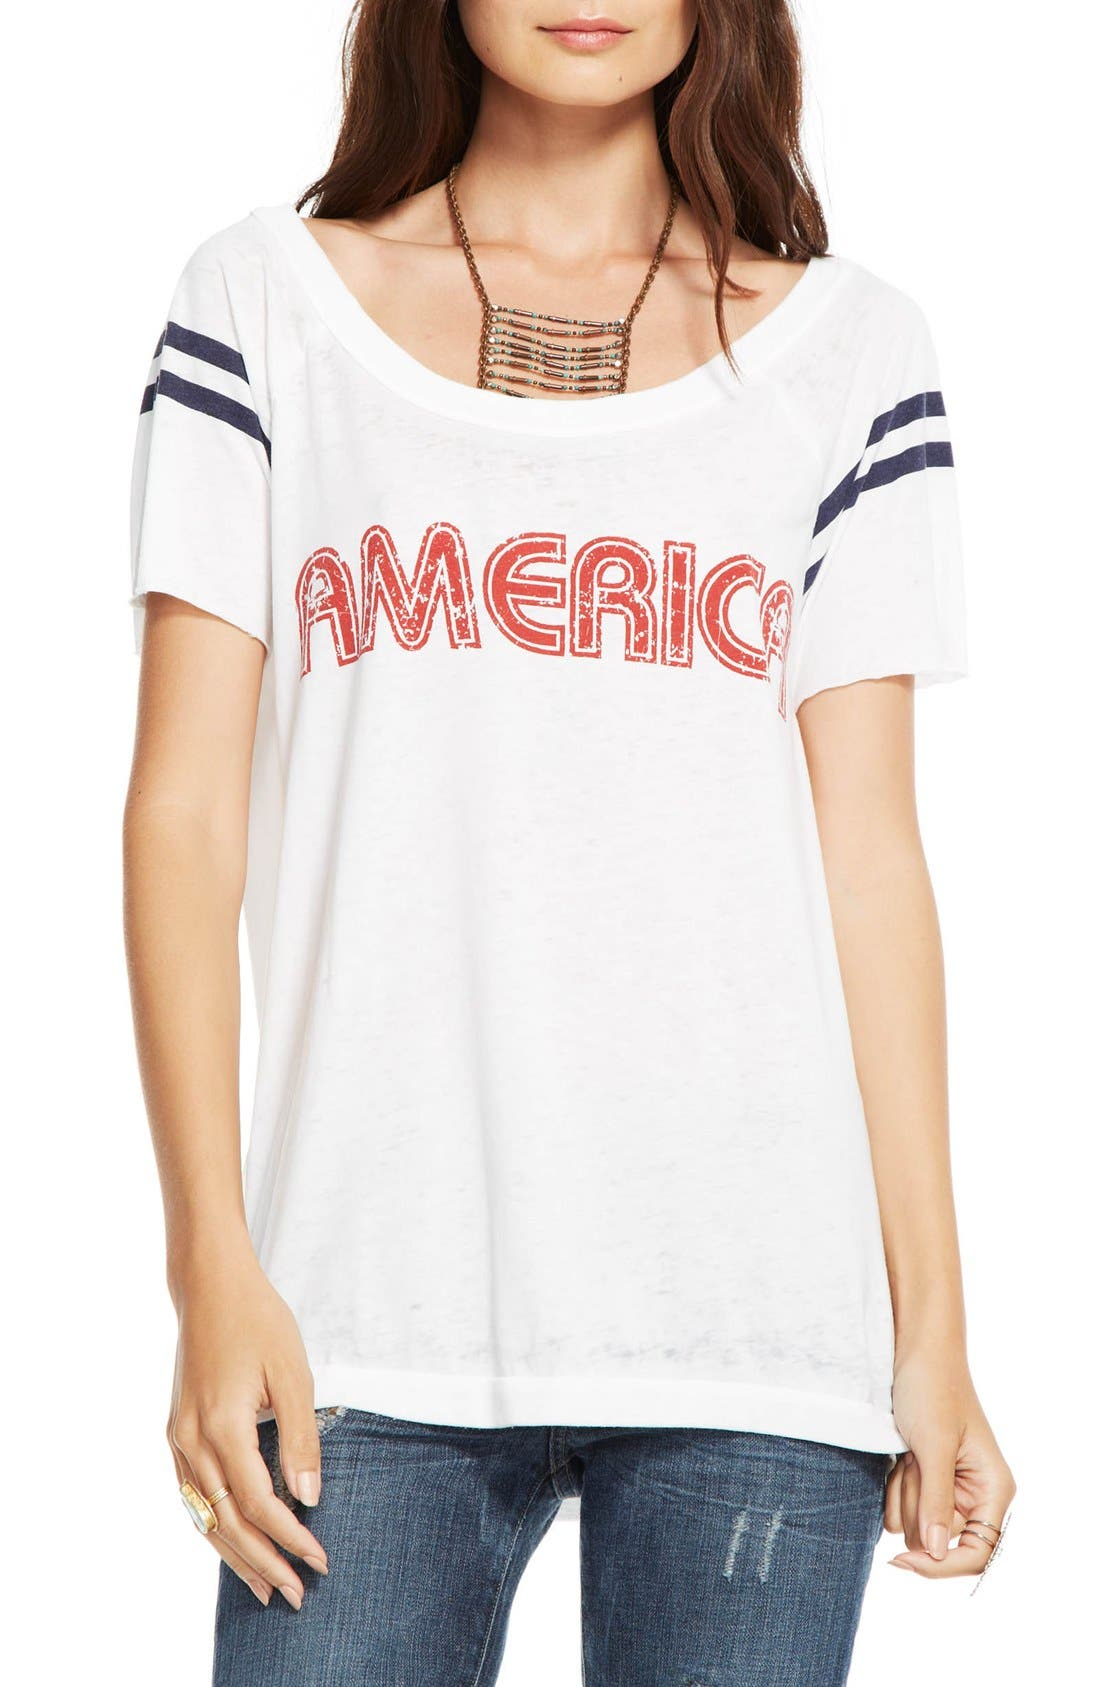 Alternate Image 1 Selected - Chaser 'America' Raw Edge Graphic Tee